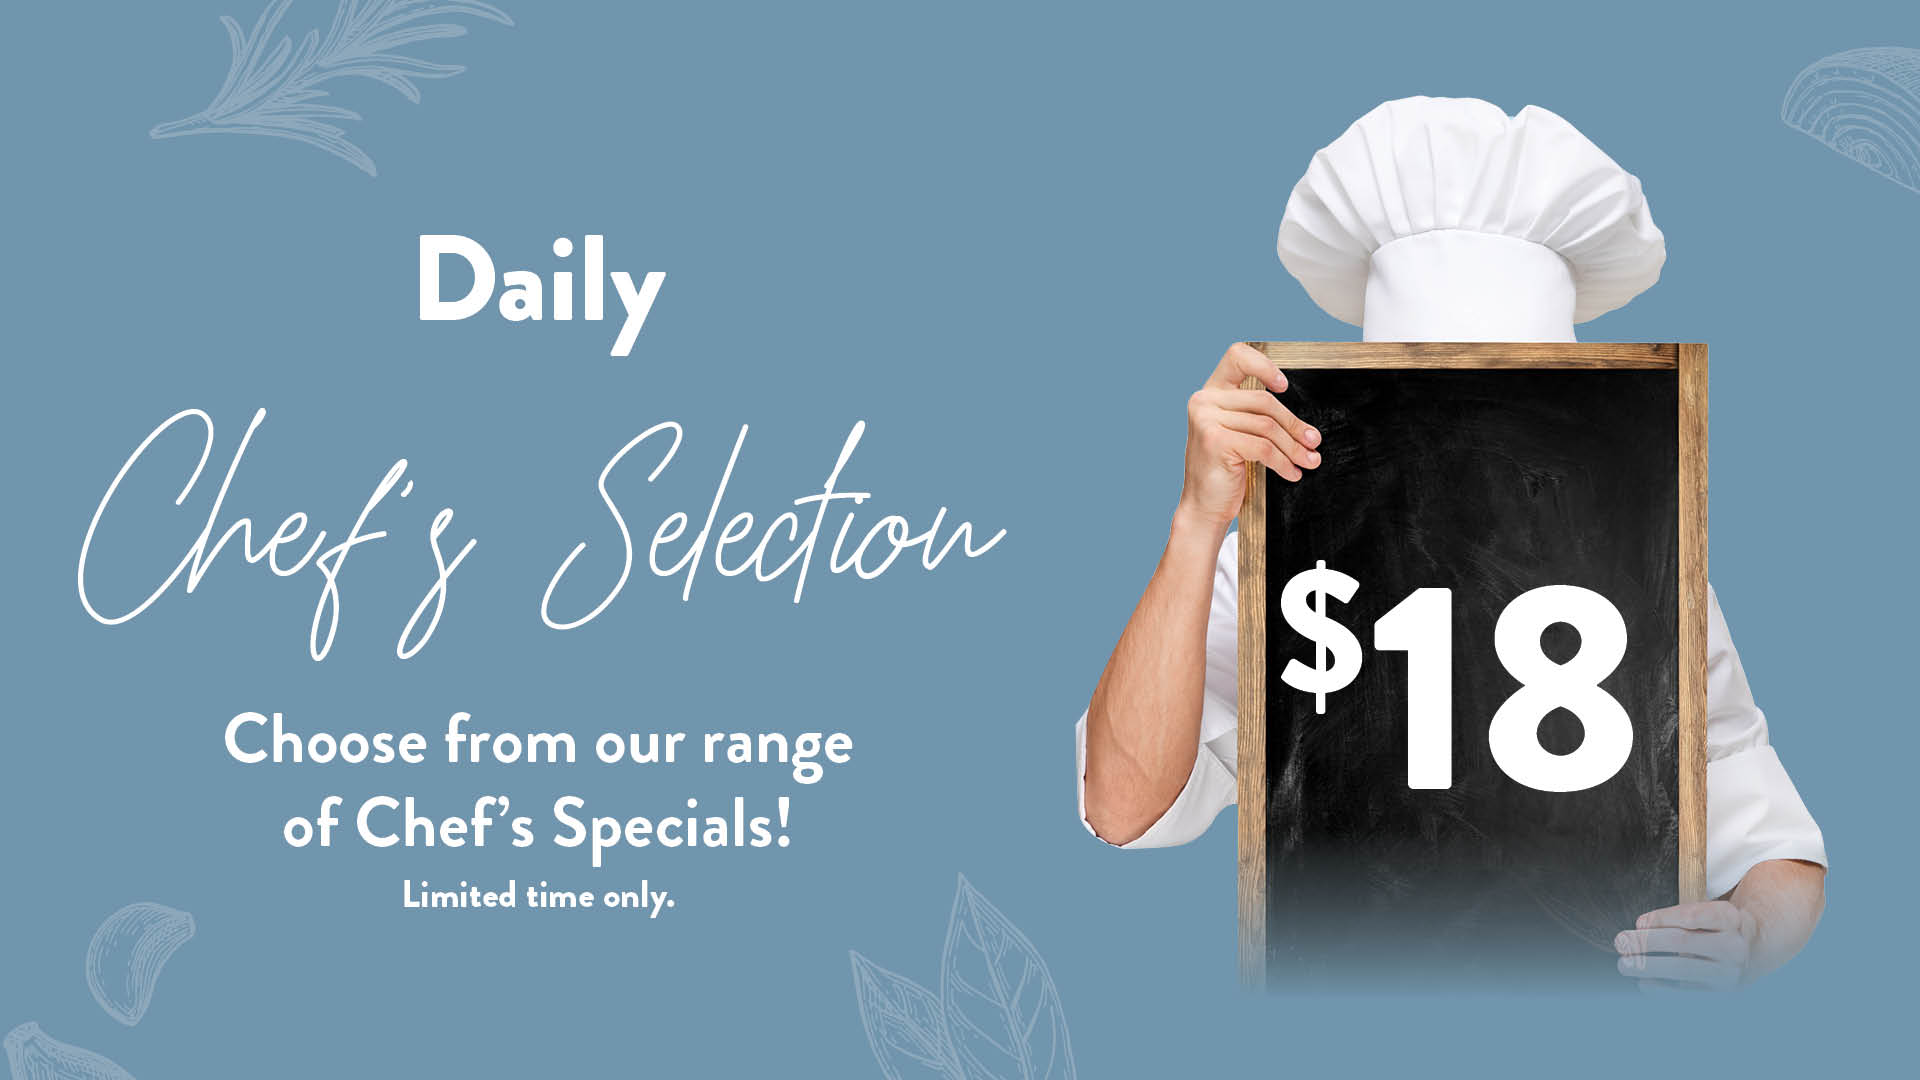 Daily Chefs Selection Specials at The Atirum